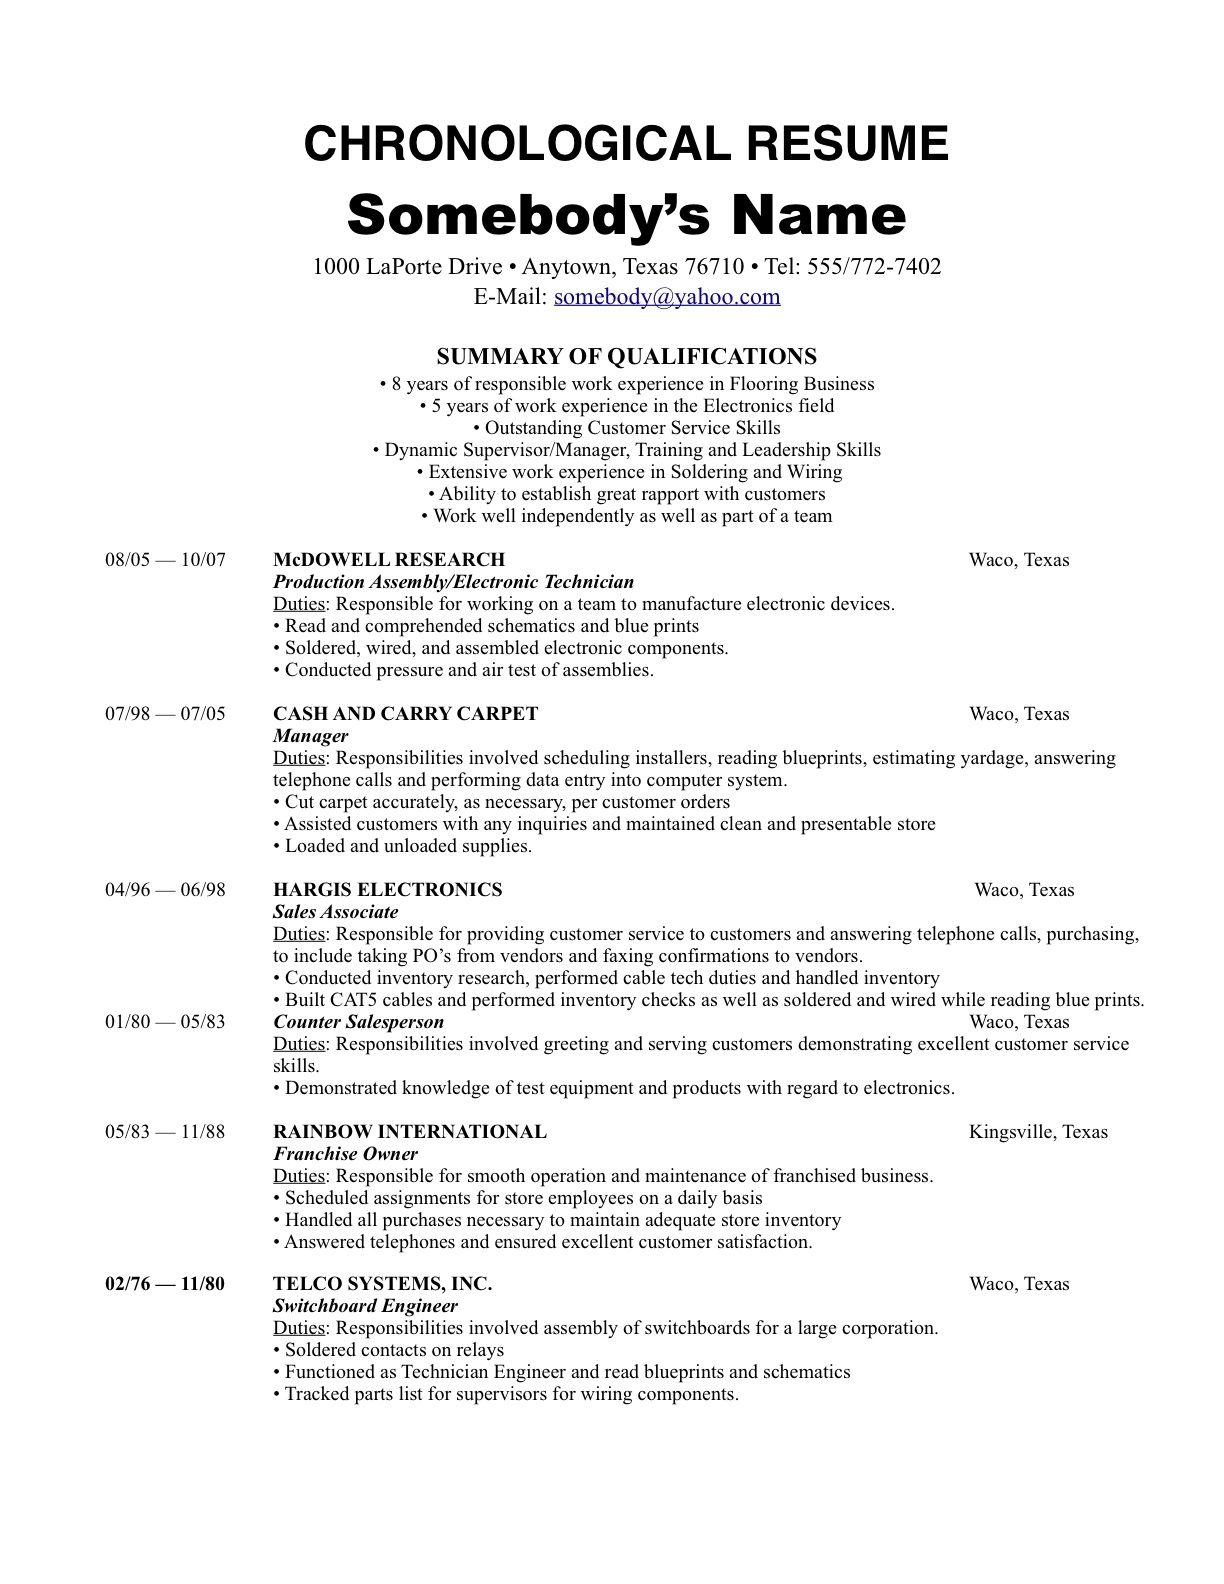 Chronological Resume Examples – Best Resume Template